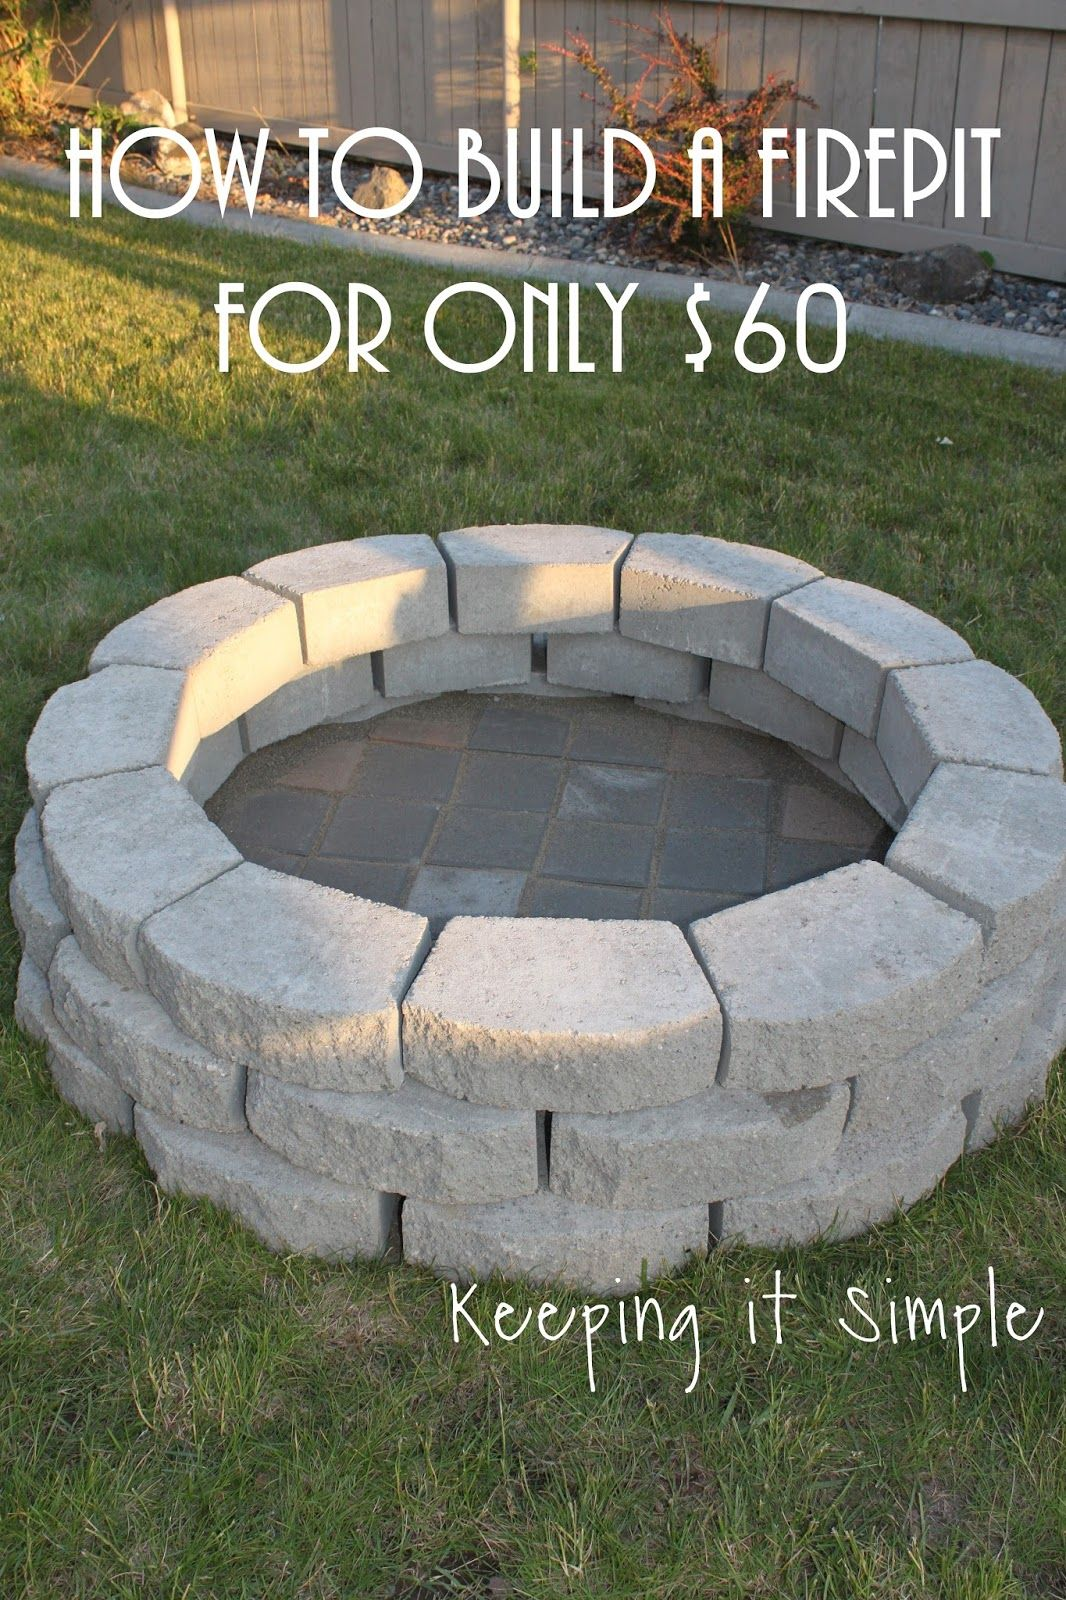 How To Build A Diy Fire Pit For Only 60 Diy Outdoor Fireplace Diy Projects For Men Backyard Fire